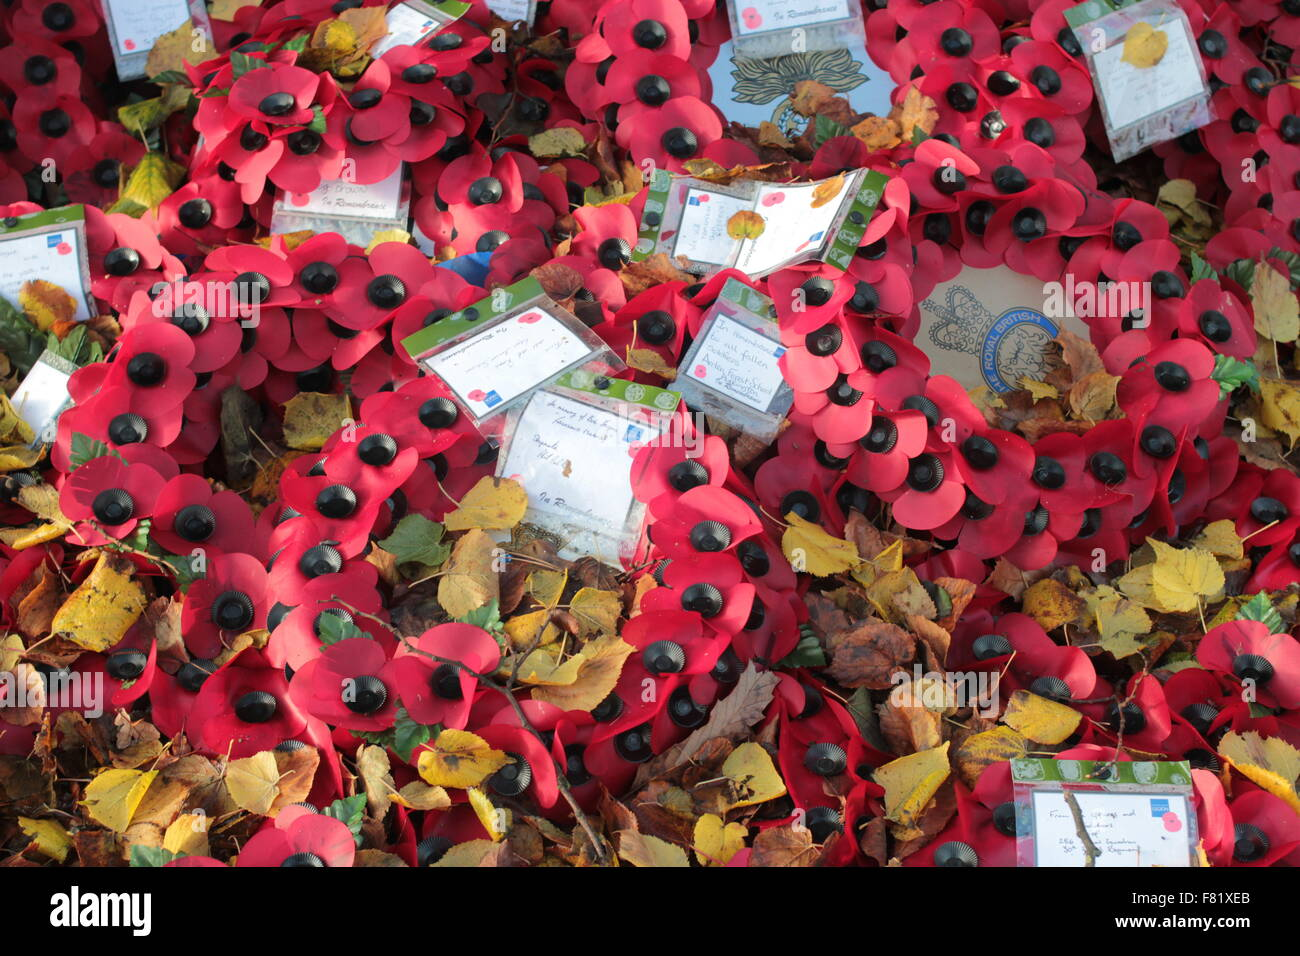 Poppies wreaths in remembrance. - Stock Image